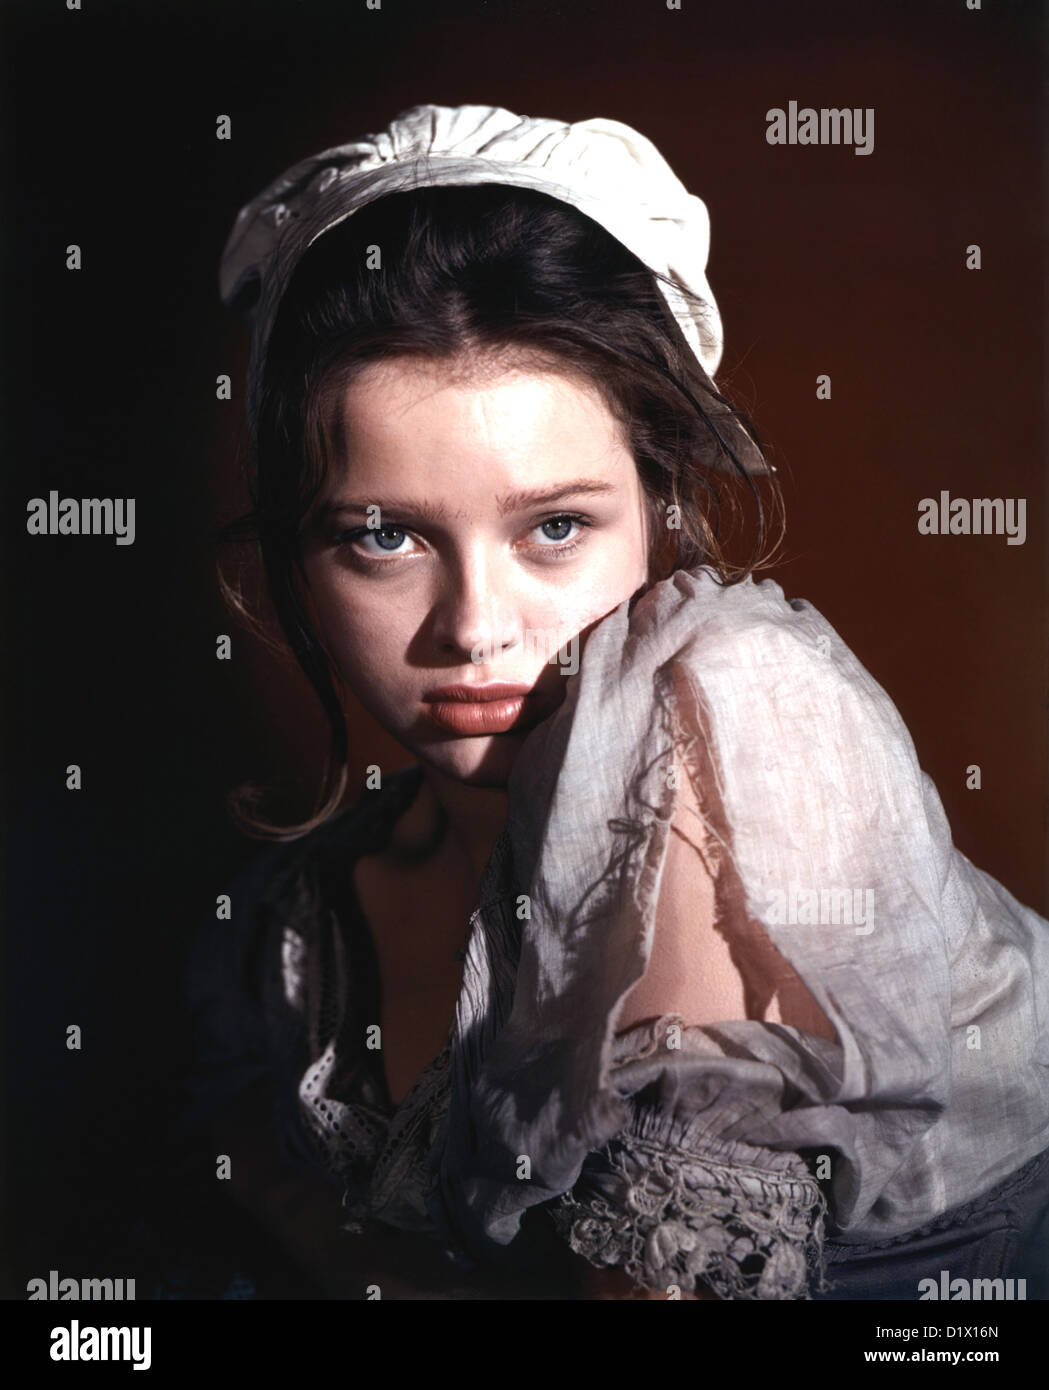 oliver twist stock photos oliver twist stock images alamy oliver twist 1948 cineguilkd film diana dors as charlotte stock image